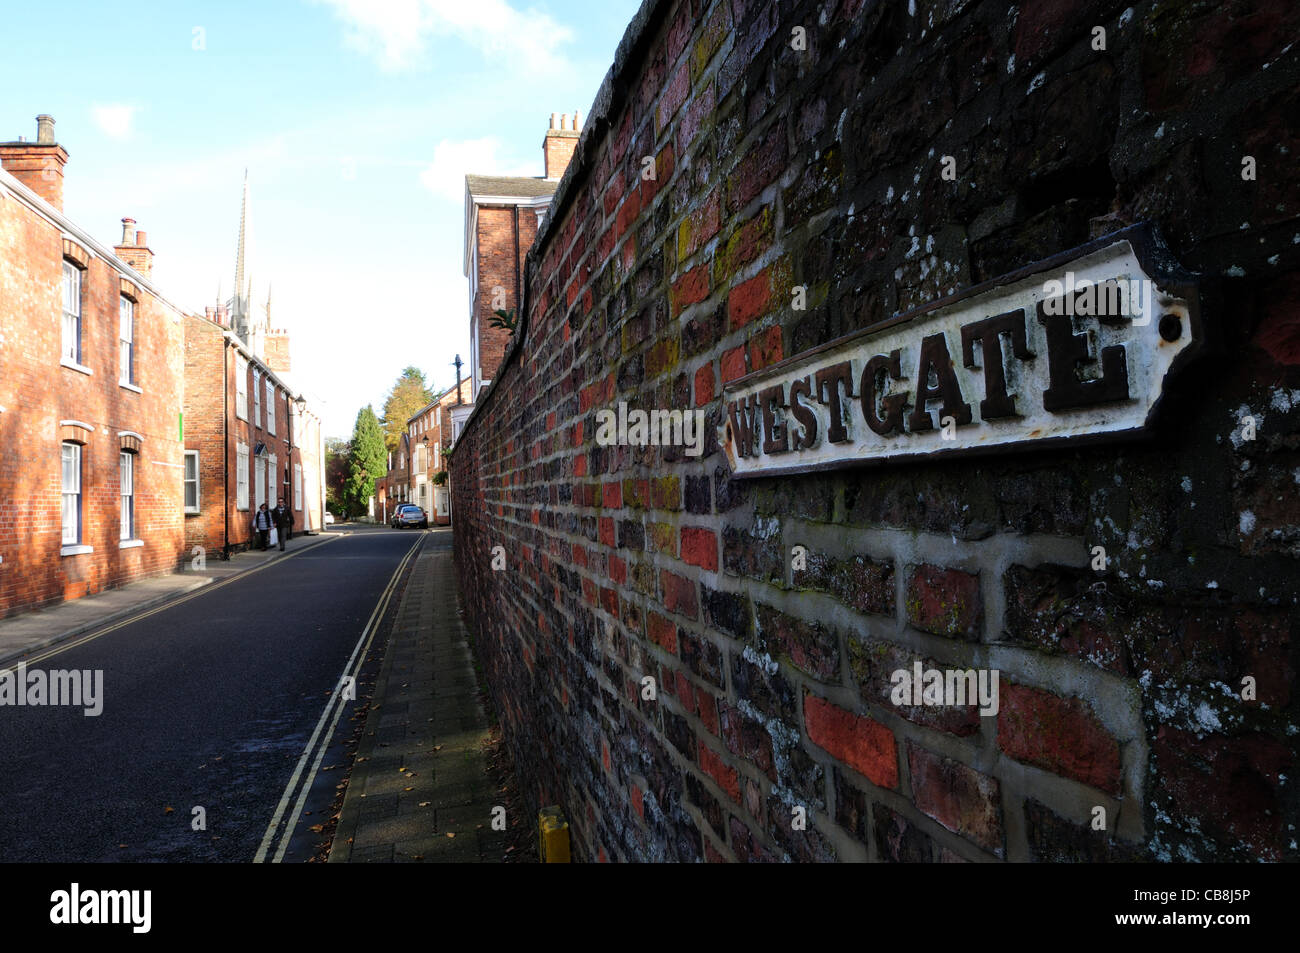 Louth Lincolnshire England. - Stock Image